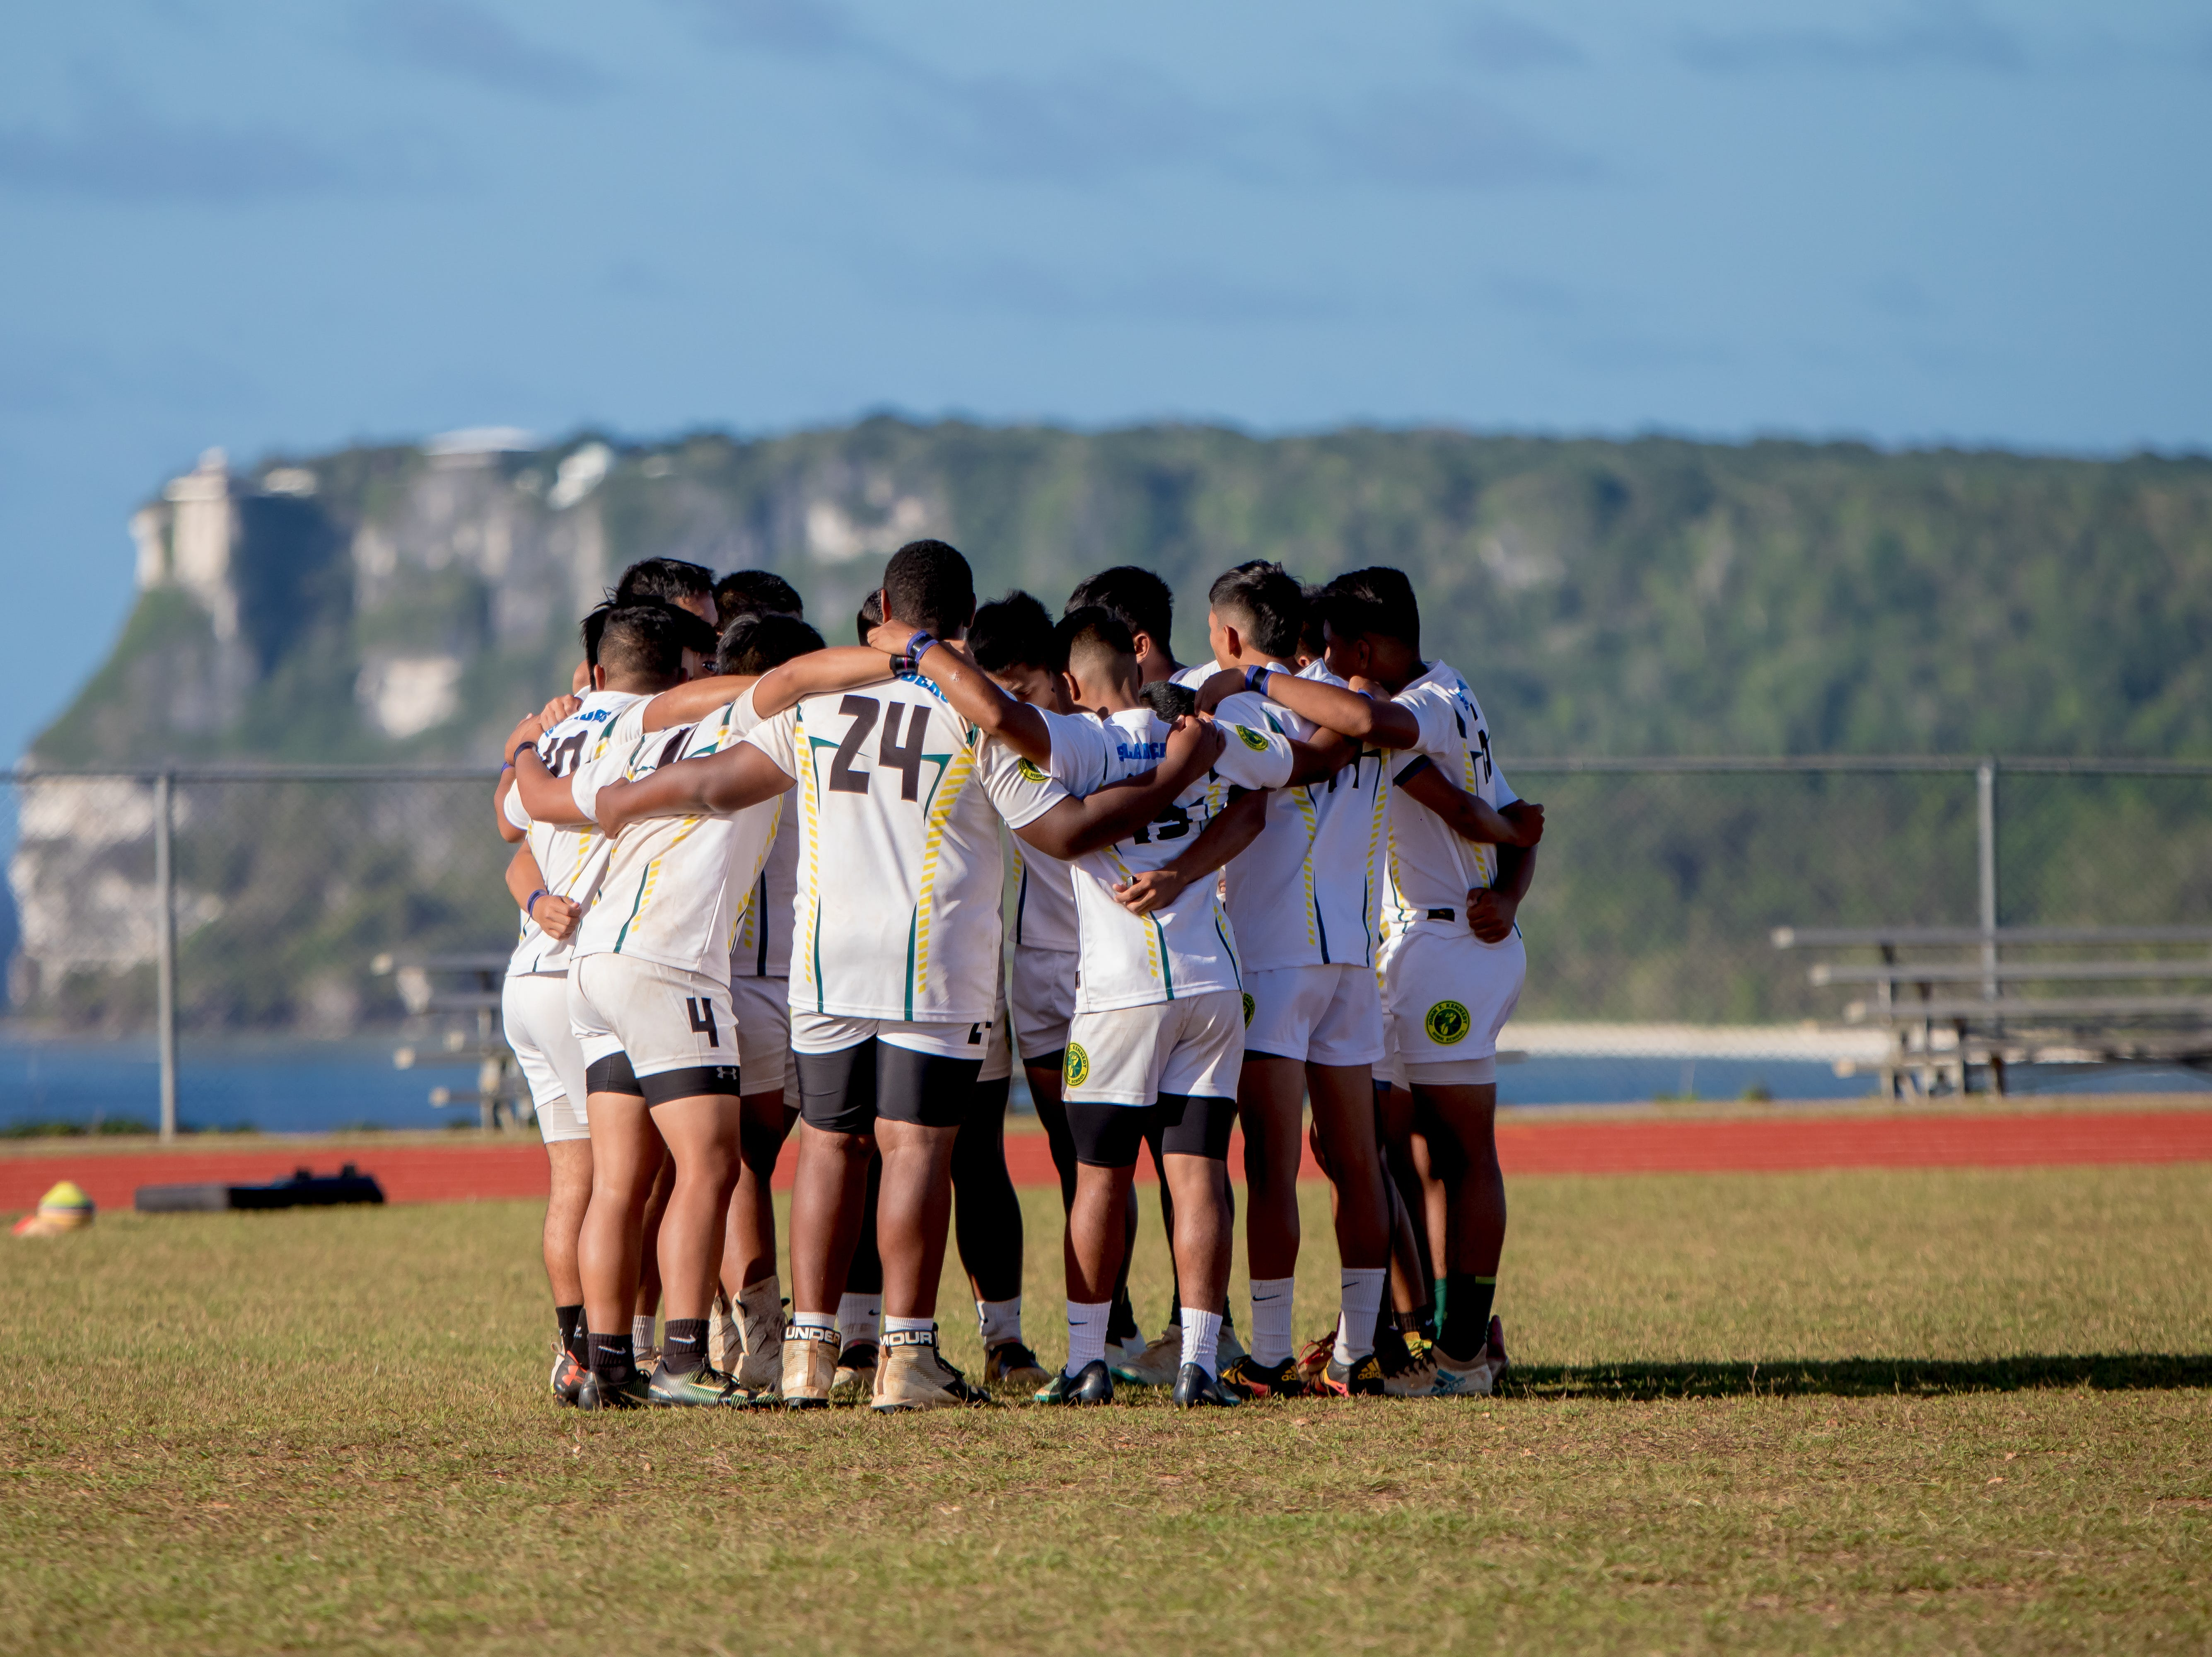 John F. Kennedy High School rugby players huddle before the match against Okkodo High School in an IIAAG/GRFU Boys Rugby contest at Ramsey Field on March 6.